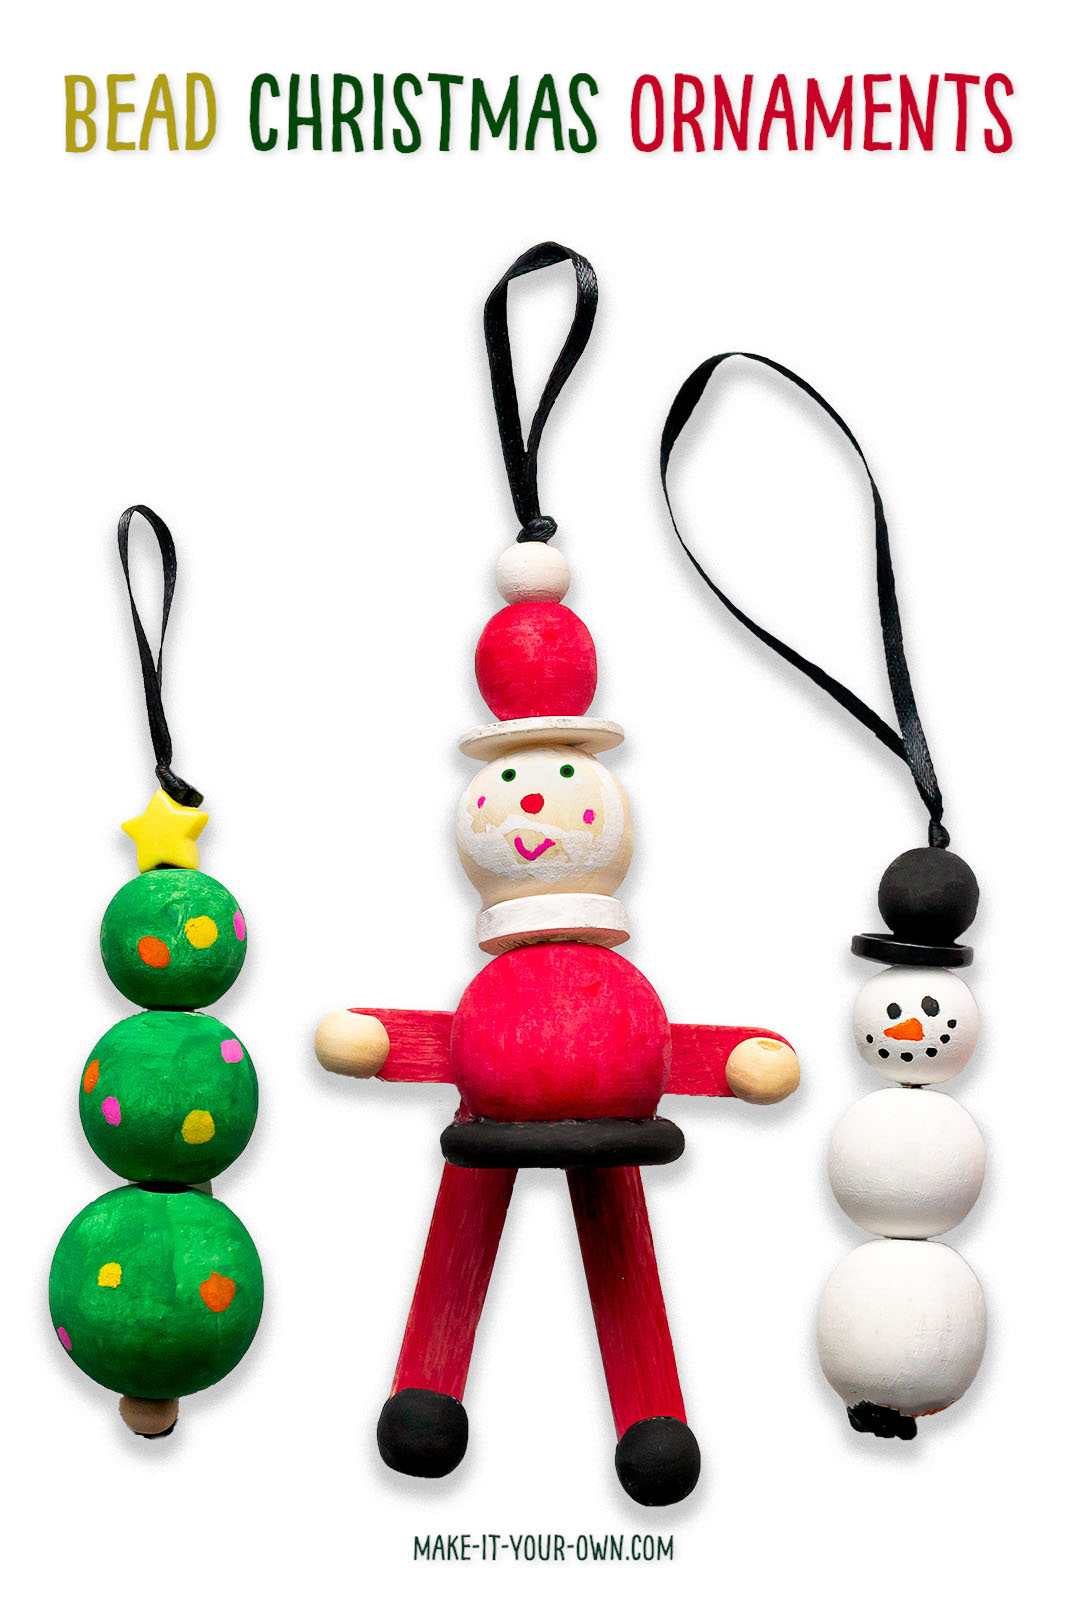 Beaded Christmas Ornaments: We show you how to make a snow person/ snowman, Santa and a Christmas tree ornament all out of wooden beads!  These cute holiday ornaments make a wonderful children's craft (and develop their fine motor skills in the process).  See the video tutorial with the steps on our website. #christmas #christmasornament #ornament #hoidays #holidayornament #beadedornament #beadornament #beadcraft #kidcraft #kidscraft #santa #christmastree #snowman #snowperson #crafttutorial #craftinstructions #christmascraft